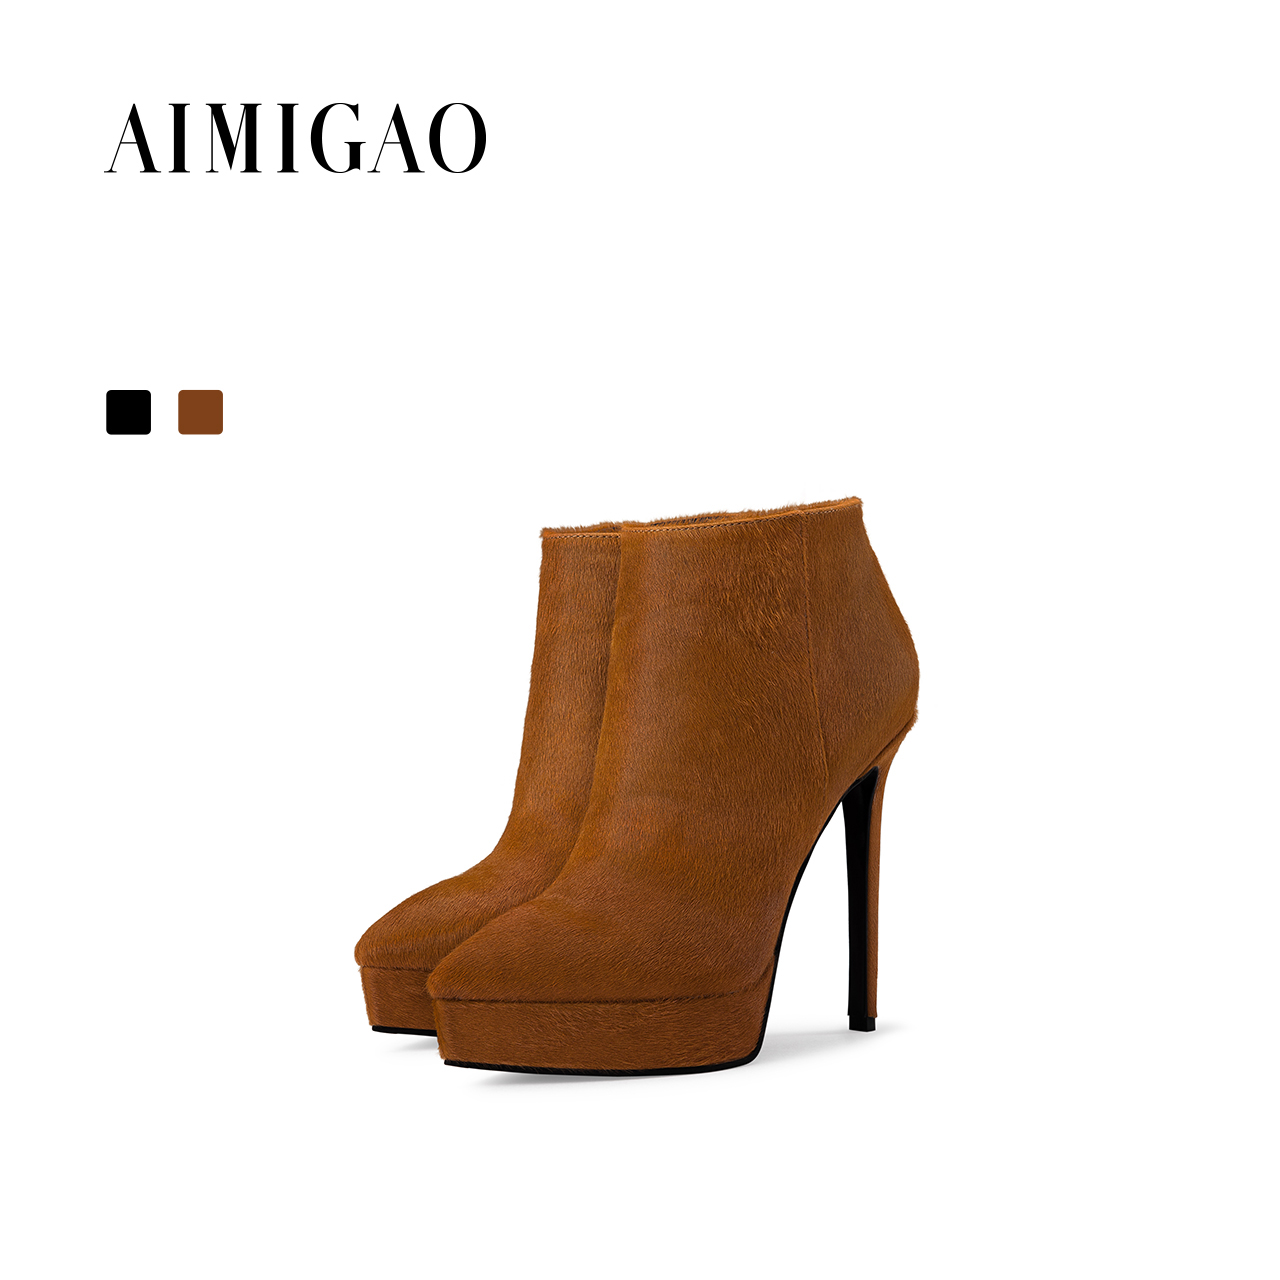 AIMIGAO Sexy high heel platform ankle boots women side zipper fashion women boots pointed toe boots shoes 2017 autumn winter new стоимость